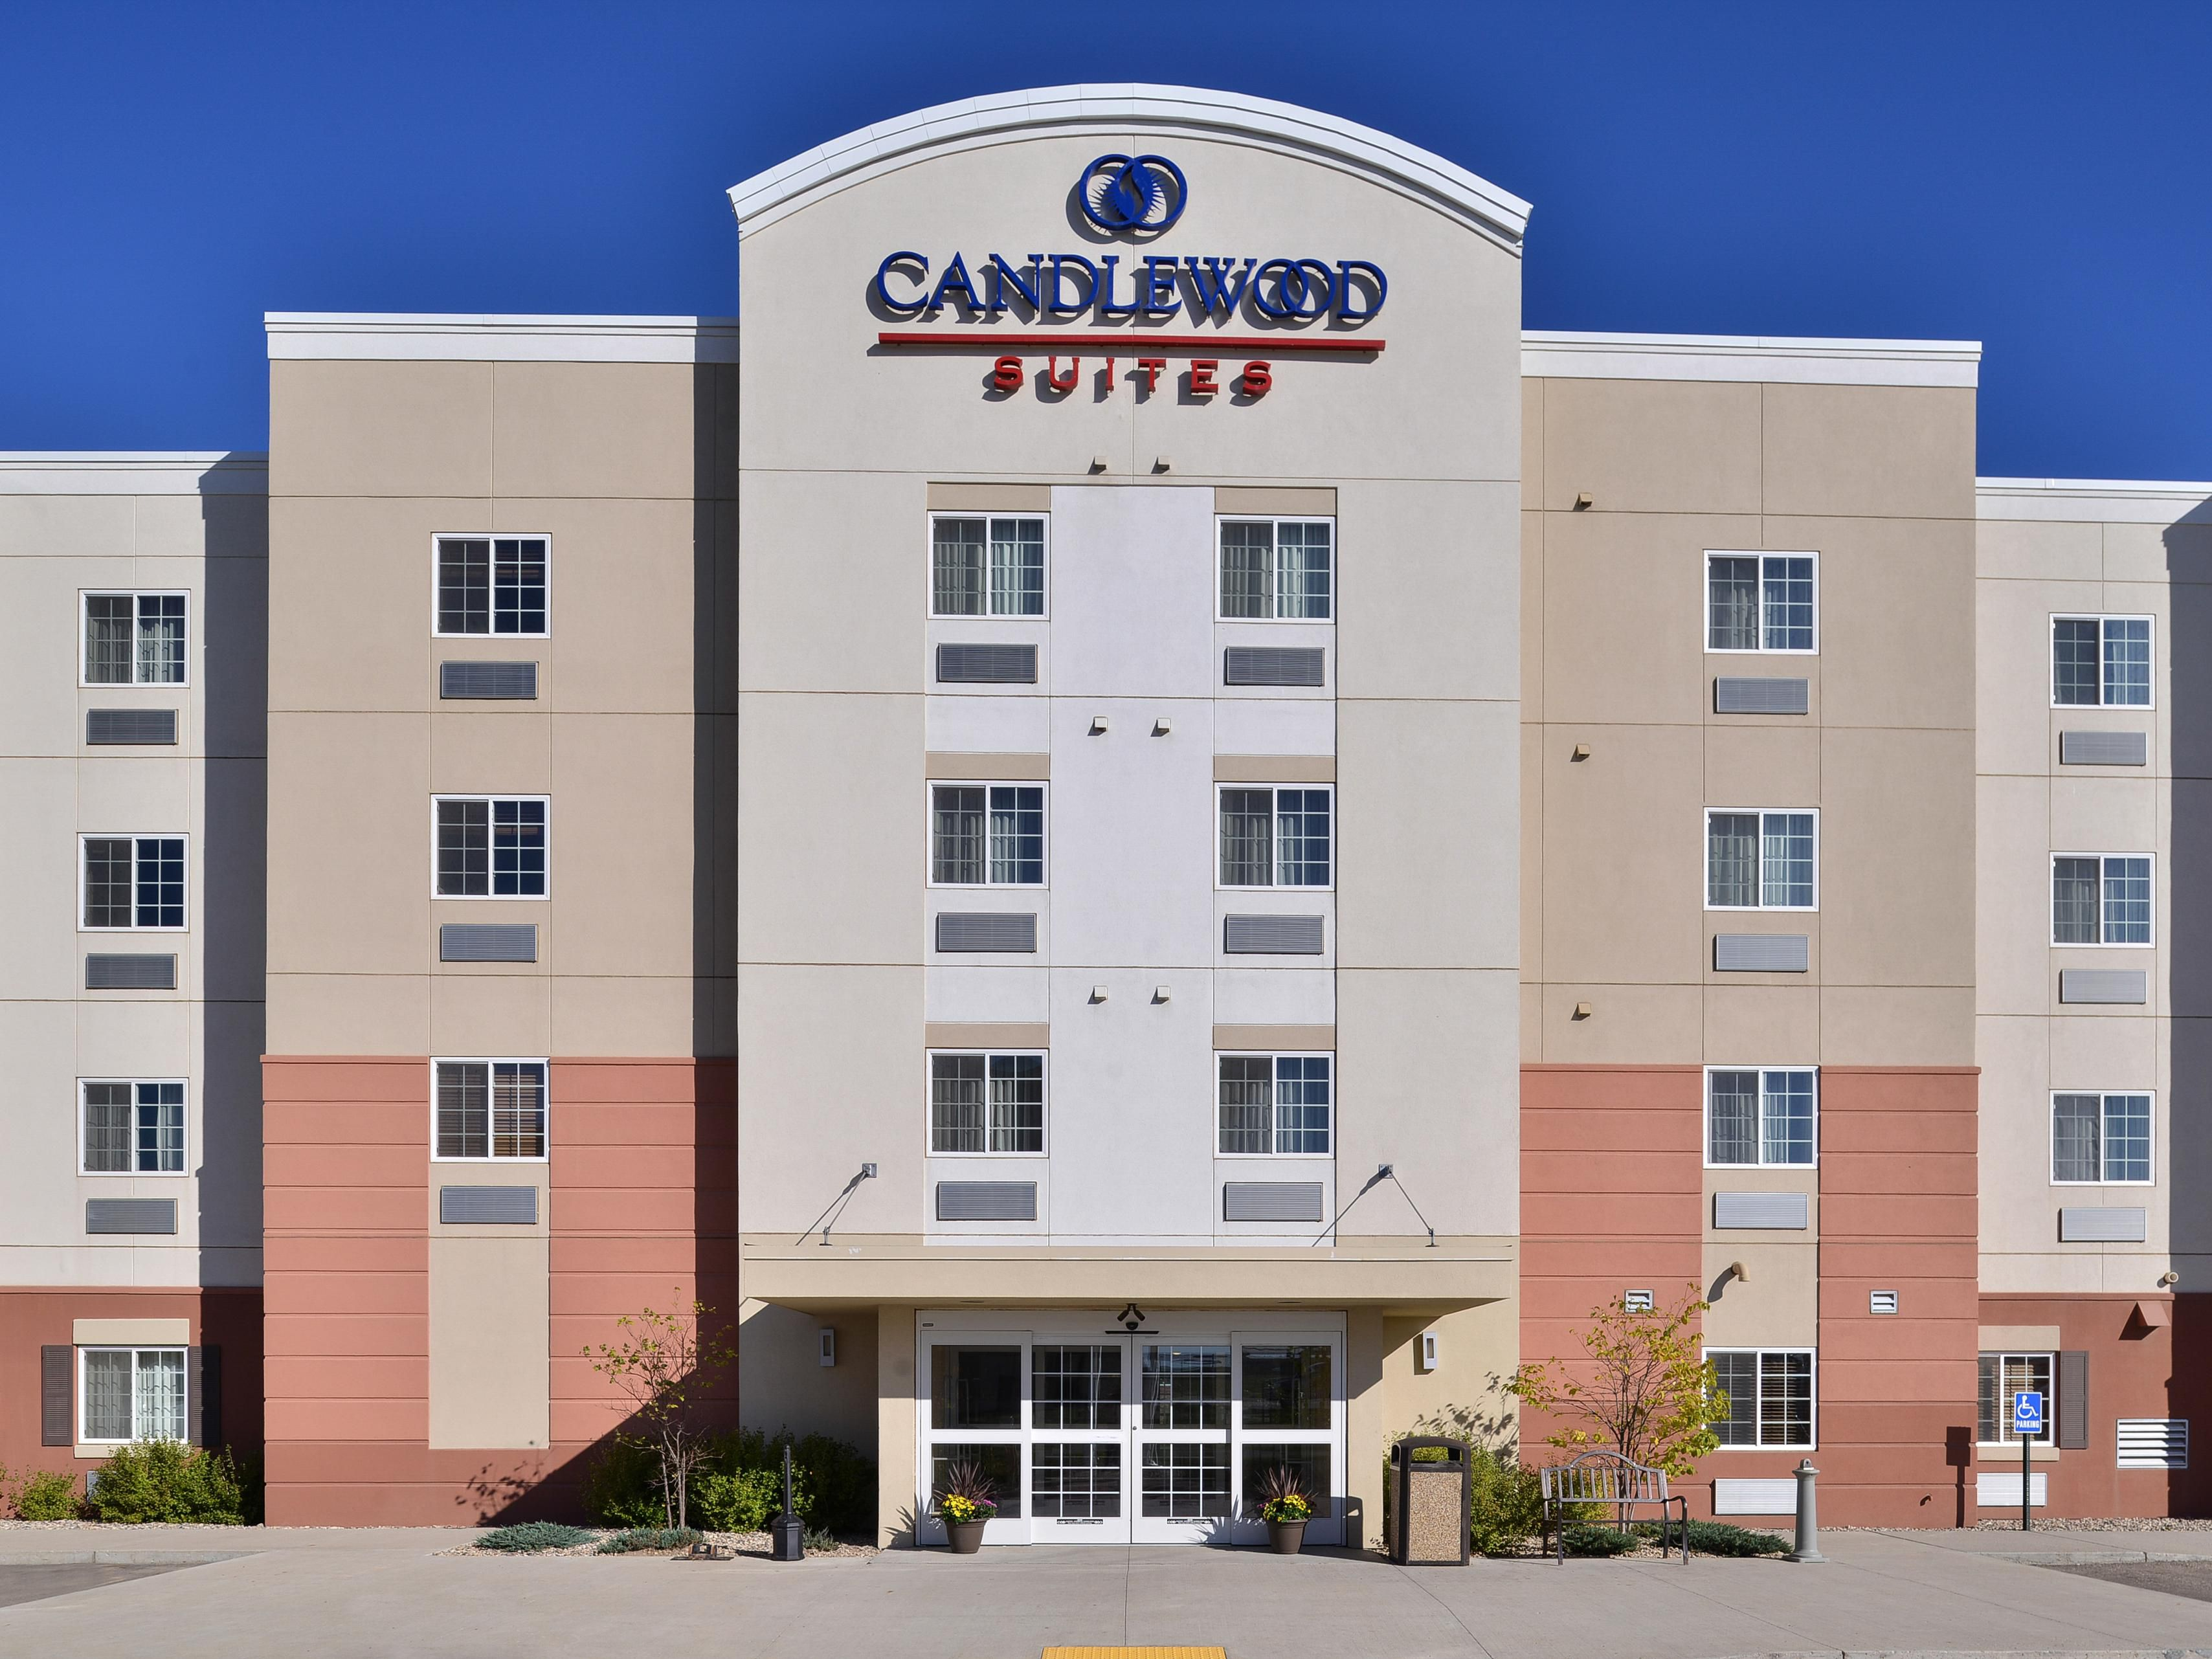 Candlewood Suites Williston Hotel Reviews Photos